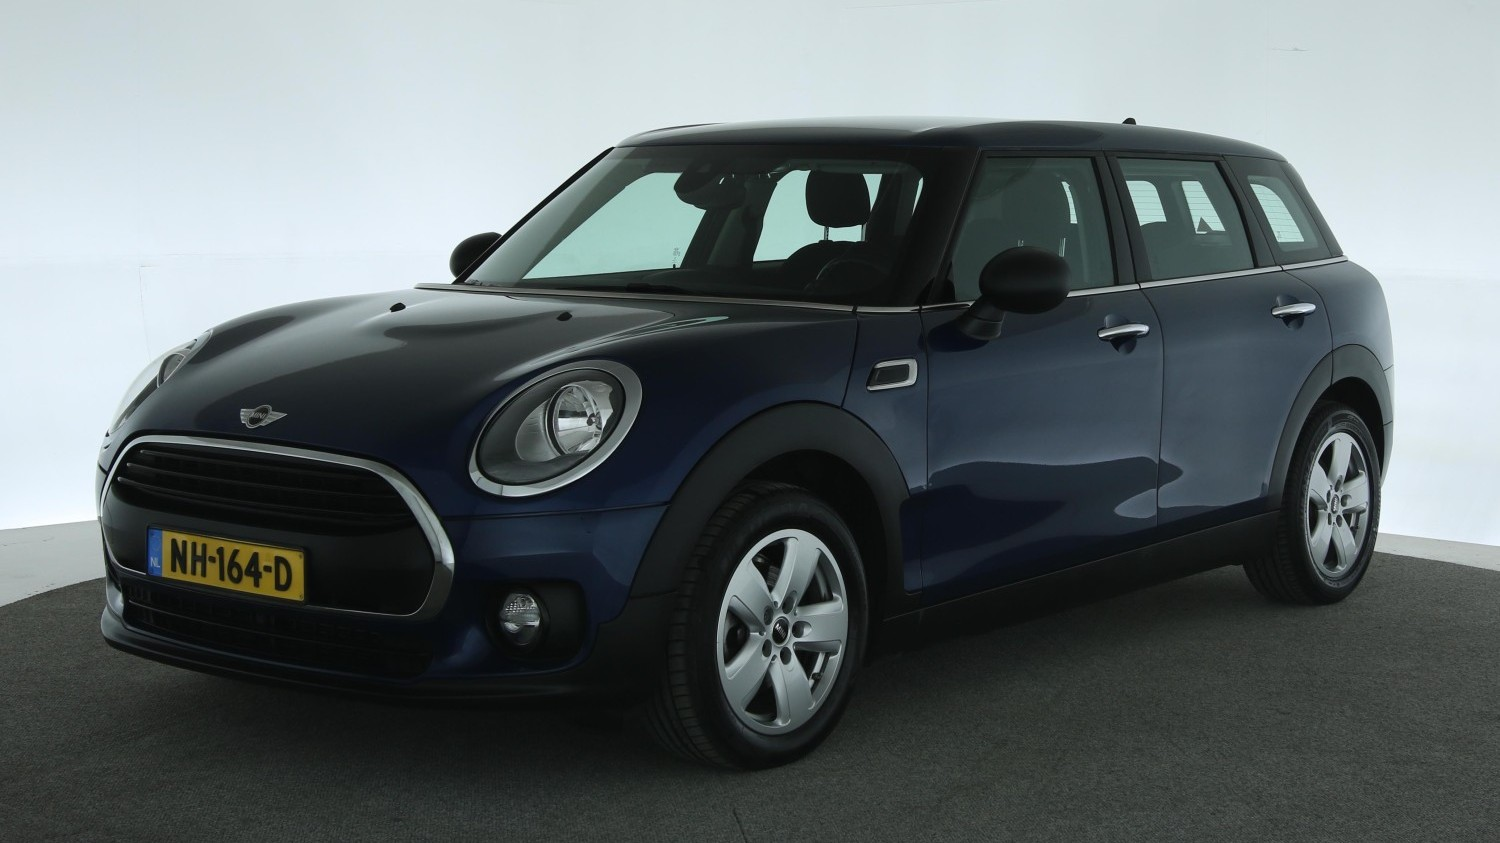 Mini Clubman Station 2017 NH-164-D 1